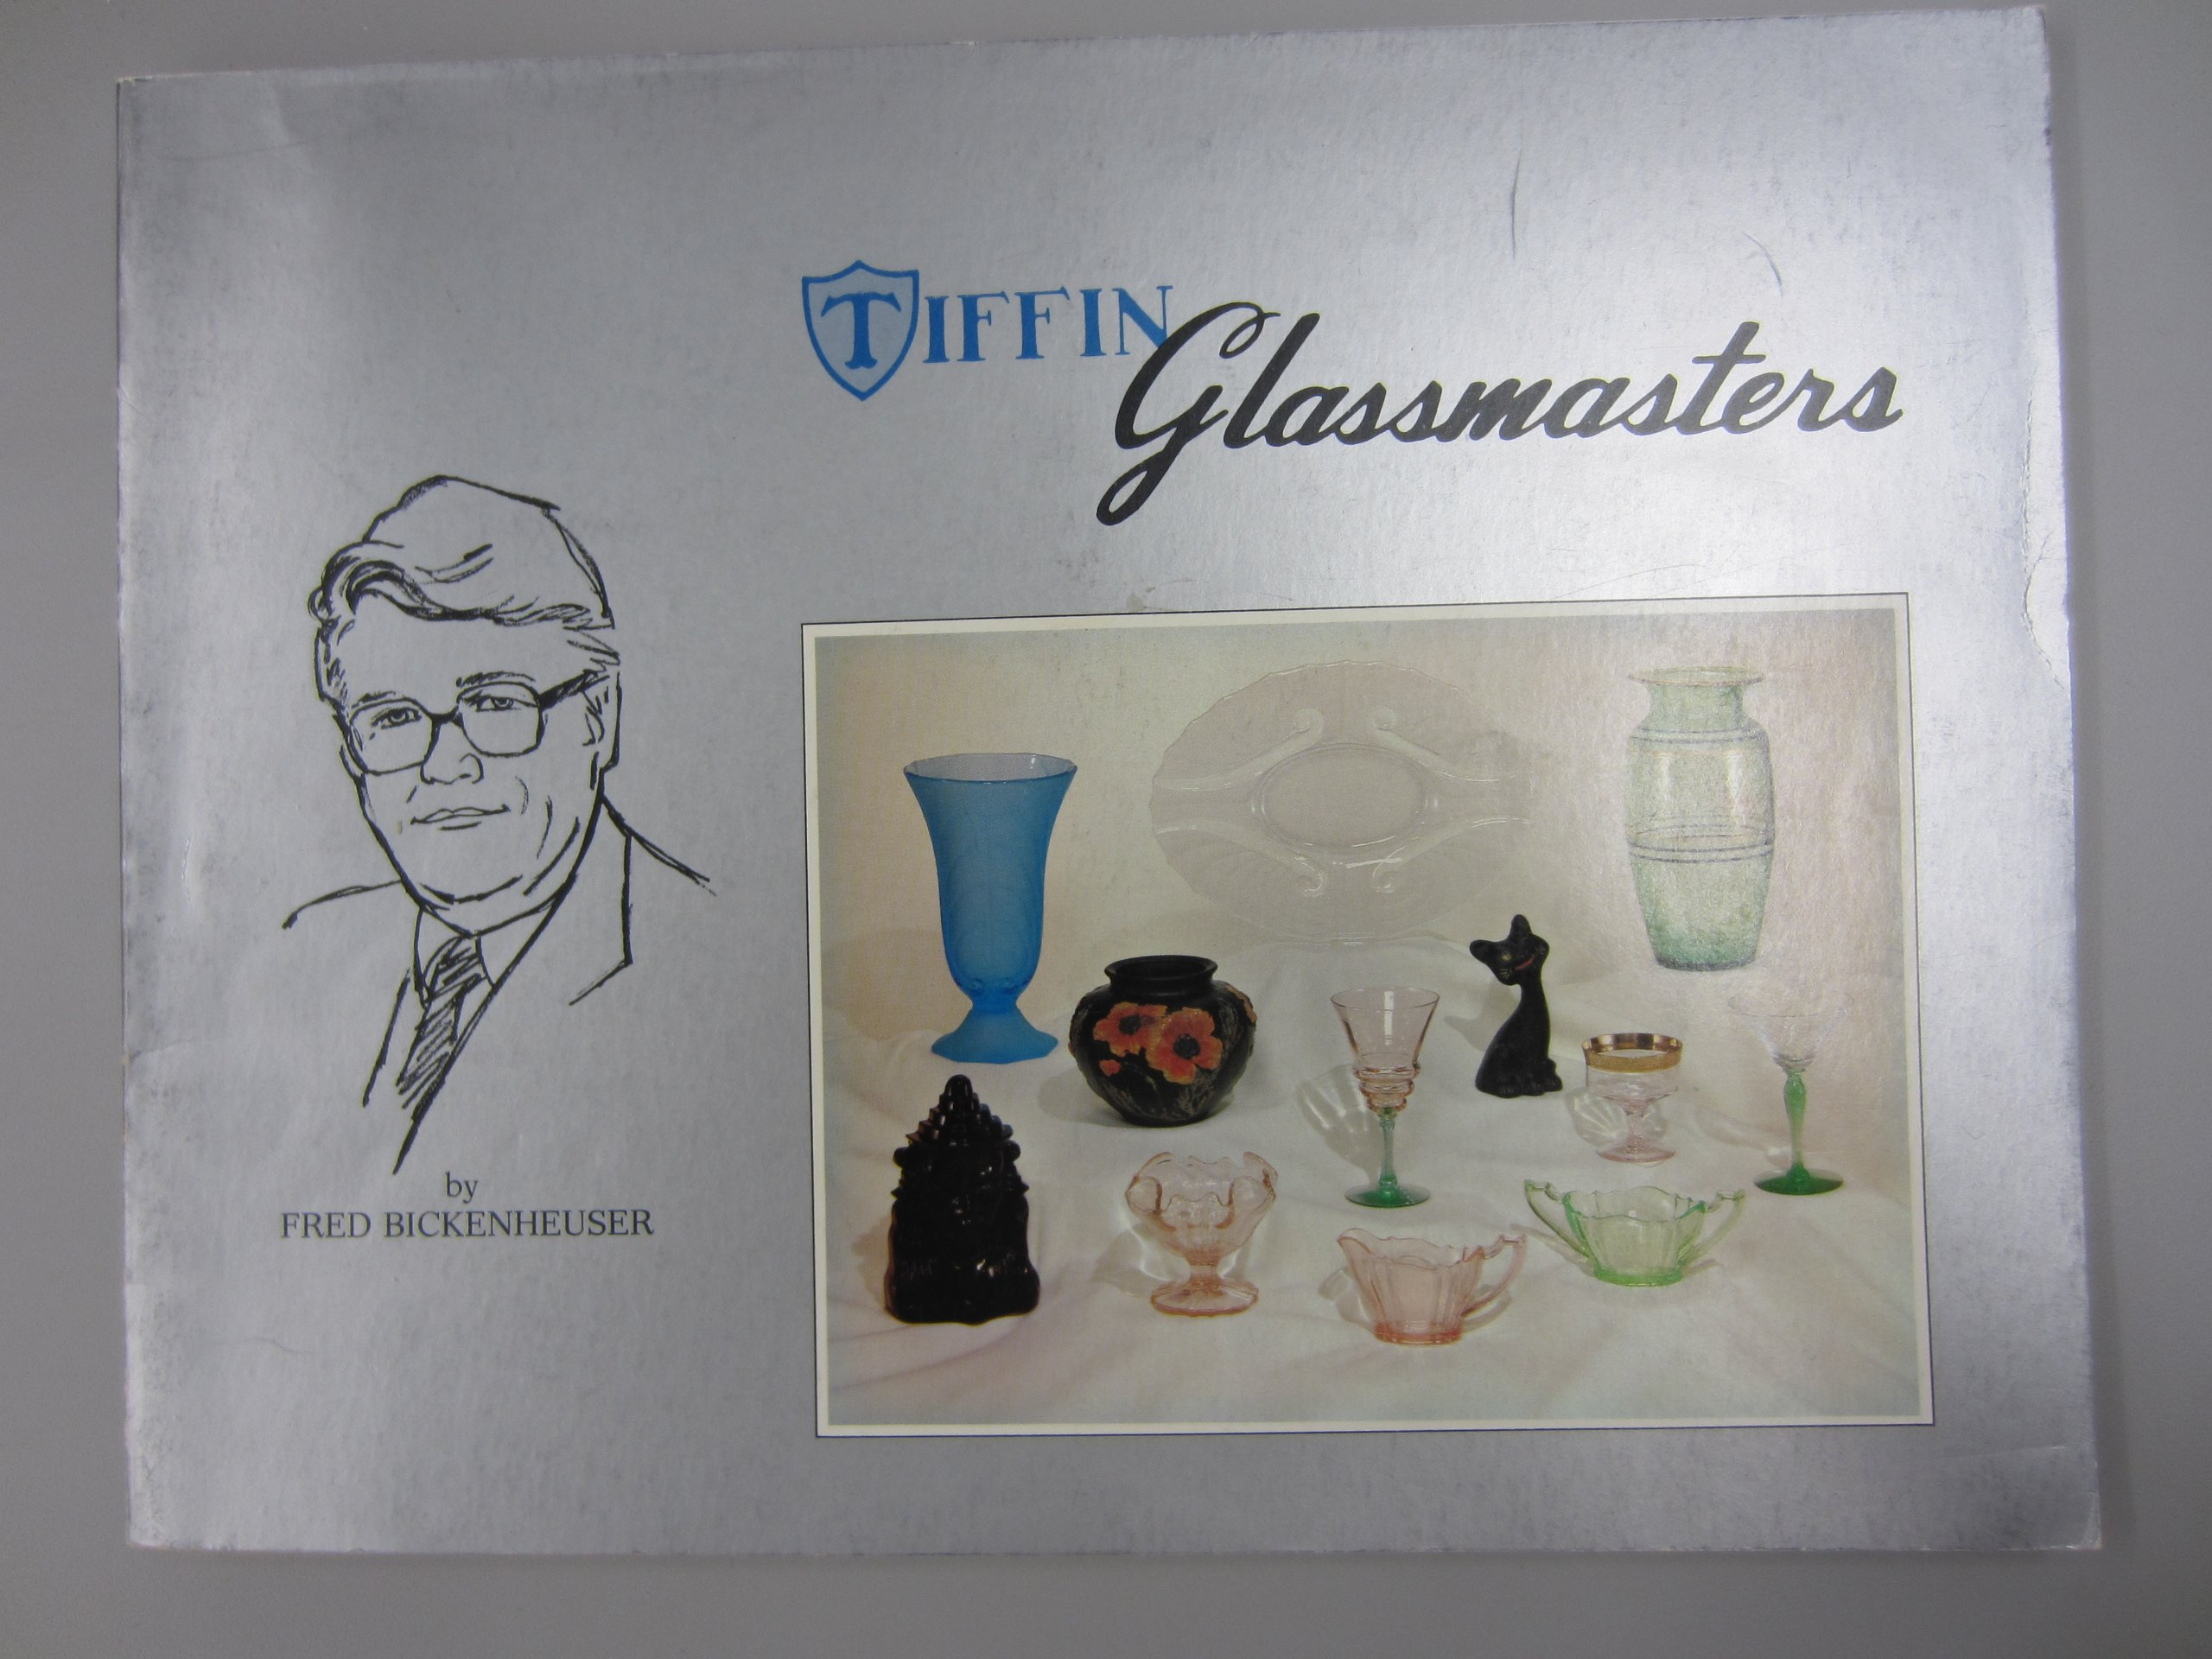 Tiffin Glassmasters Book 1: A pictorial guide of the glassware produced by the Tiffin Glass Company, Tiffin, Ohio, during the Depression Era 1929-1941